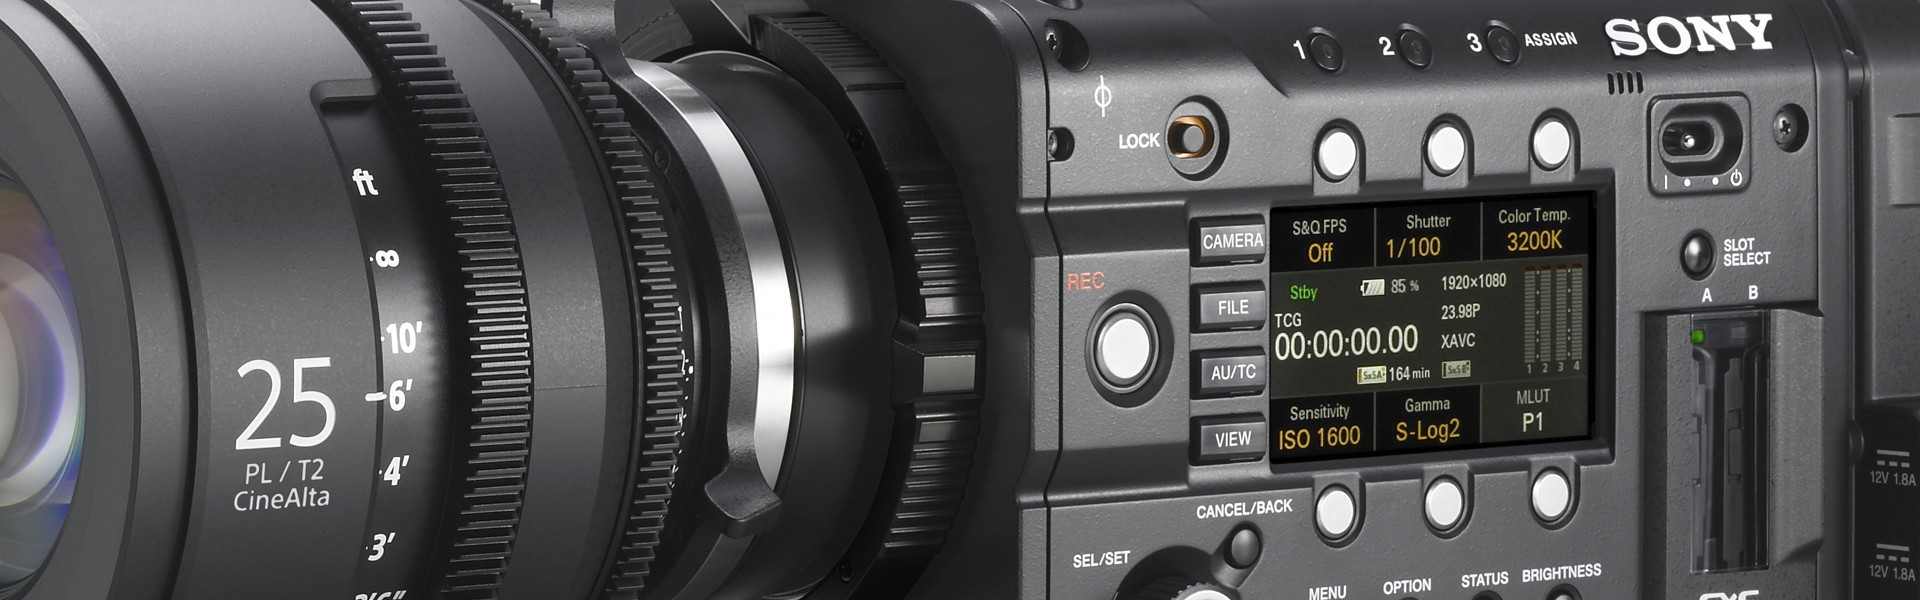 Header image for article Sony F55 Simultaneous RAW & HD Recording & Workflow